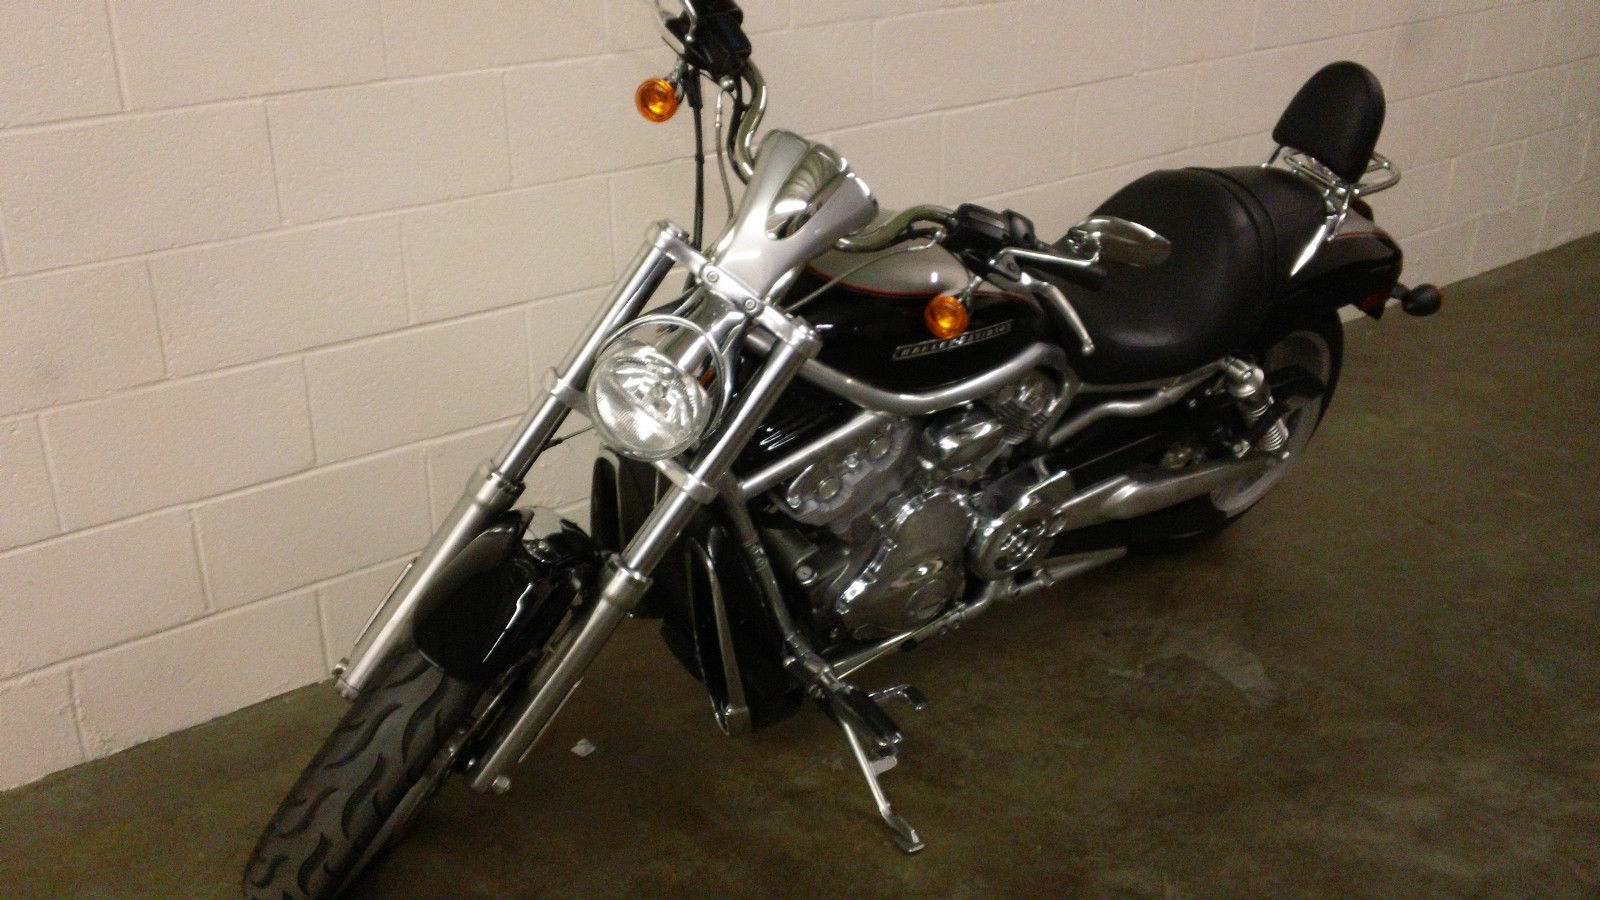 2009 Harley-Davidson VRSCAW V-ROD motorcycle two-tone with extras ...